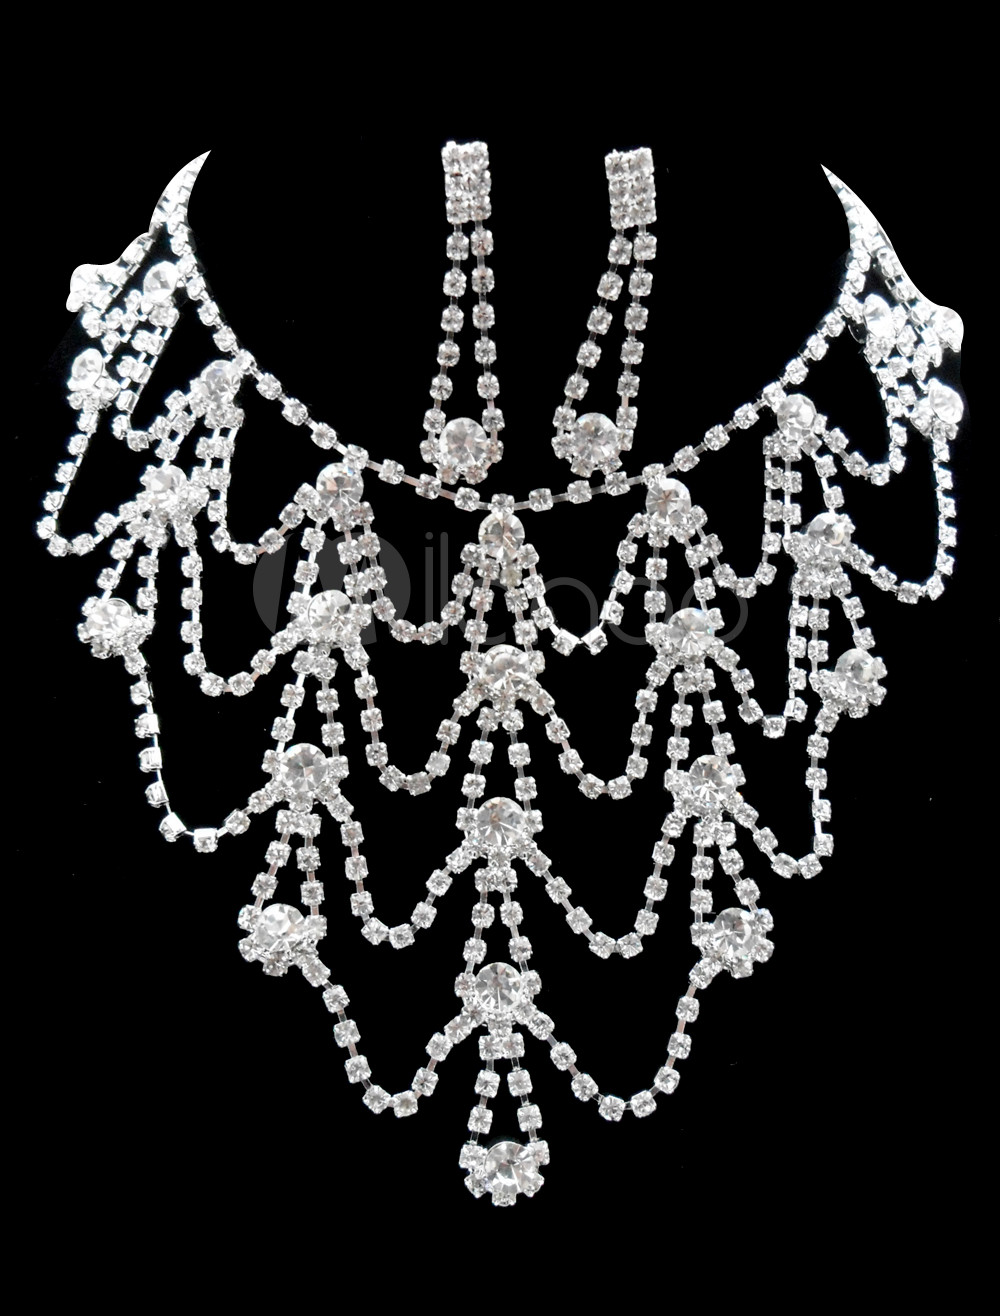 Superior Alloy Rhinestone Wedding Jewelry Set For Brides 74791 1 Naked asian teen boy being naked asian vagina